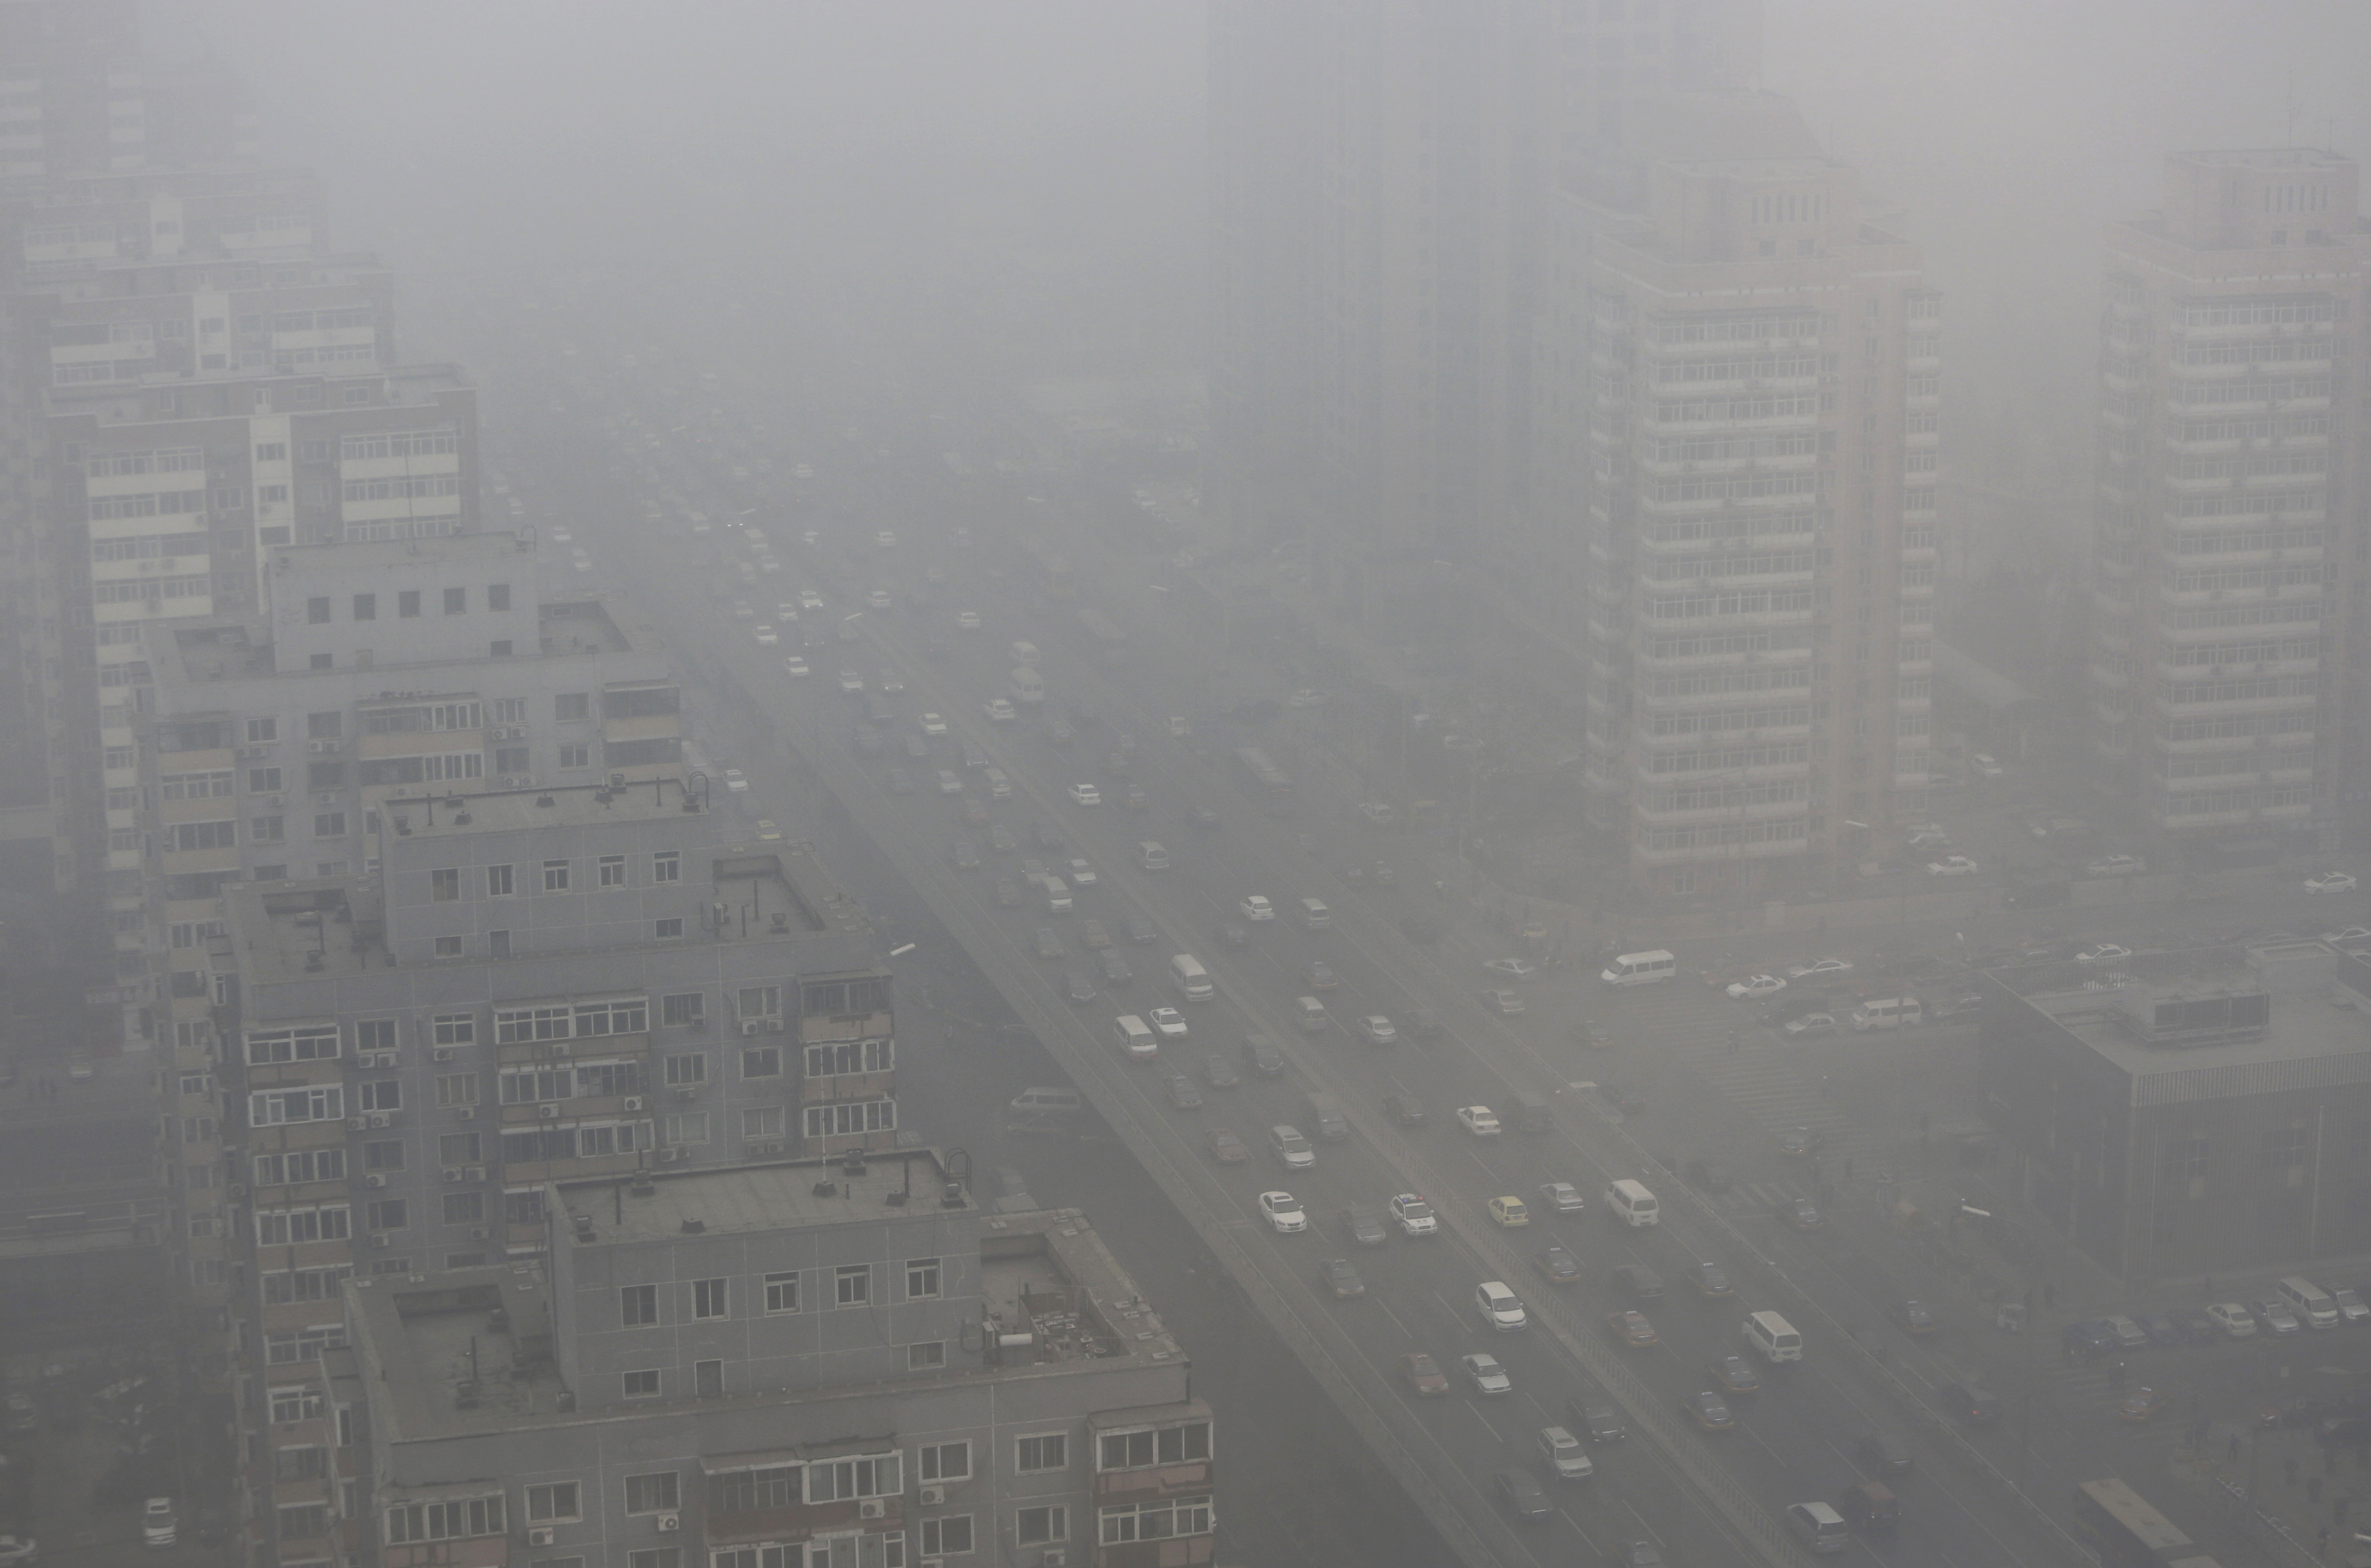 Haze: Air Pollution and Current Visibility Problems Paper